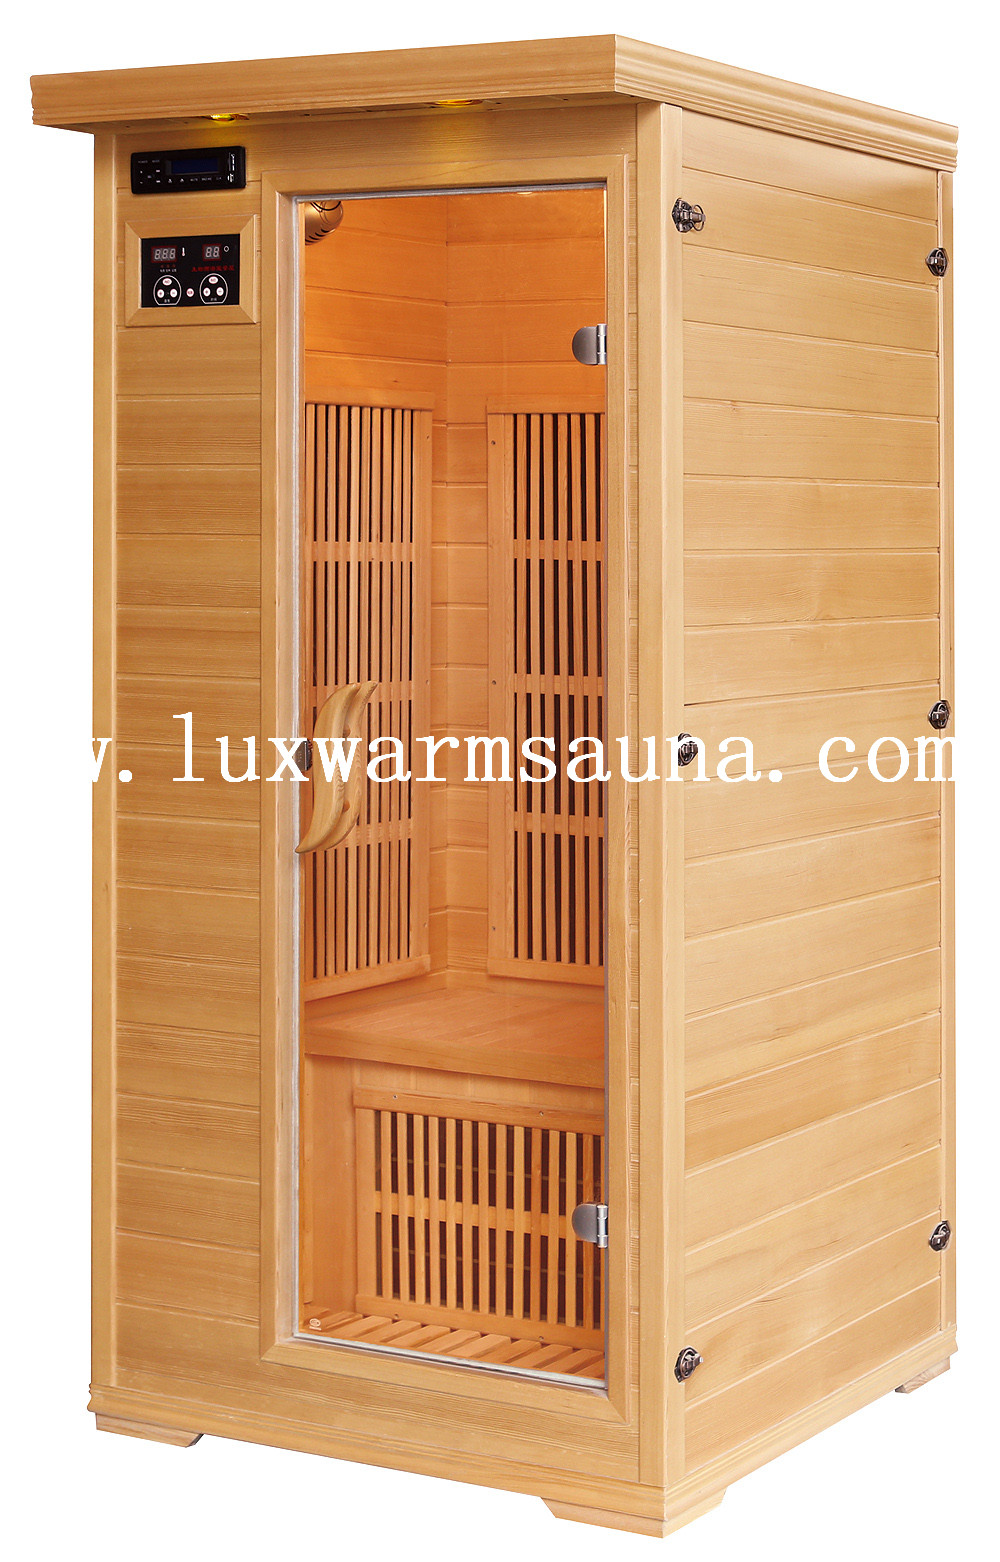 Far infrared carbon heater low EMF sauna room